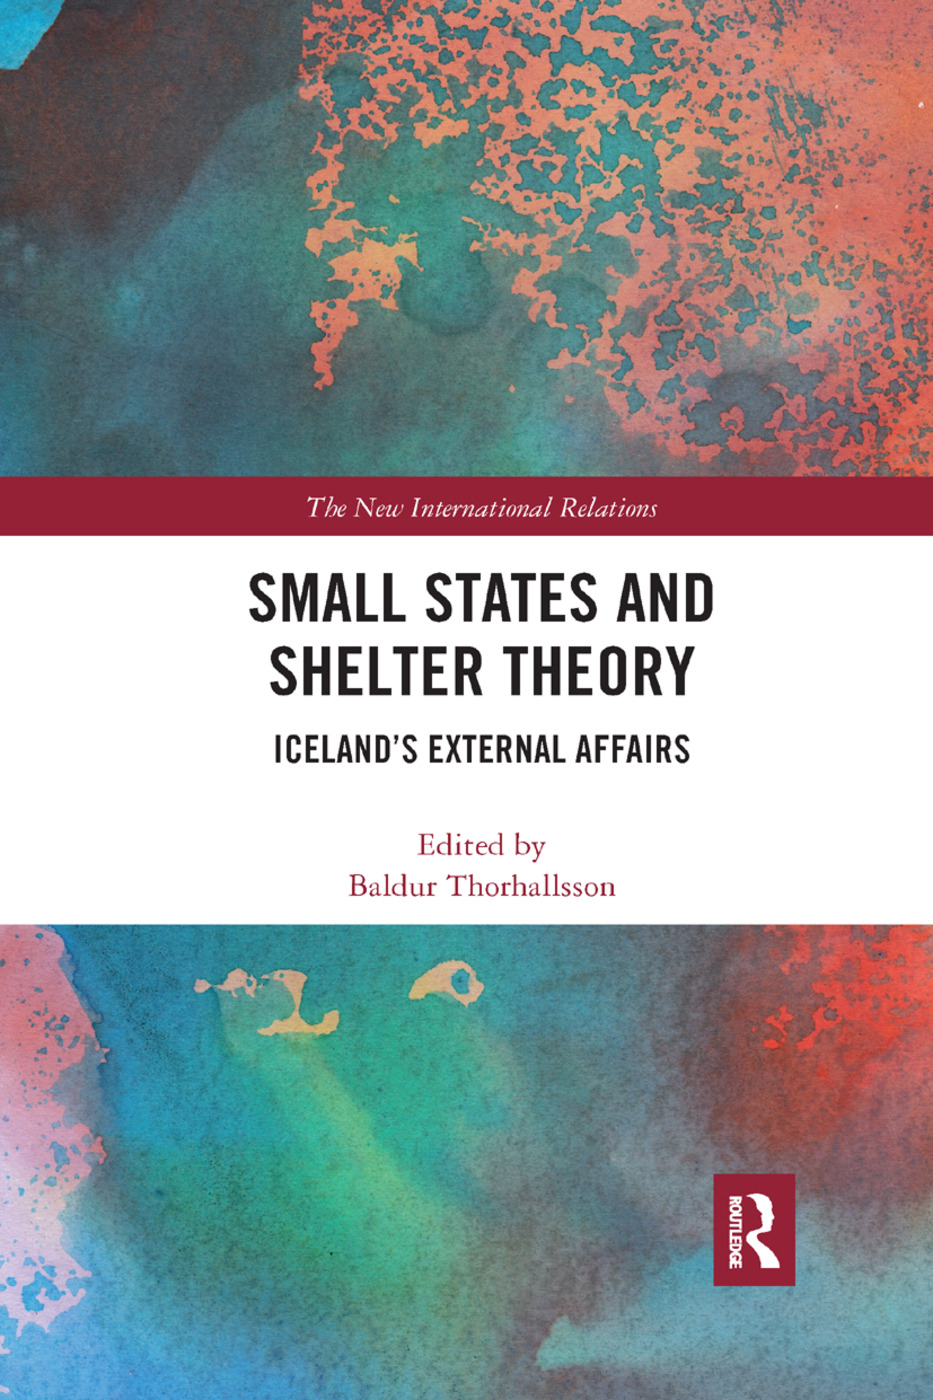 Small States and Shelter Theory: Iceland's External Affairs, 1st Edition (Paperback) book cover